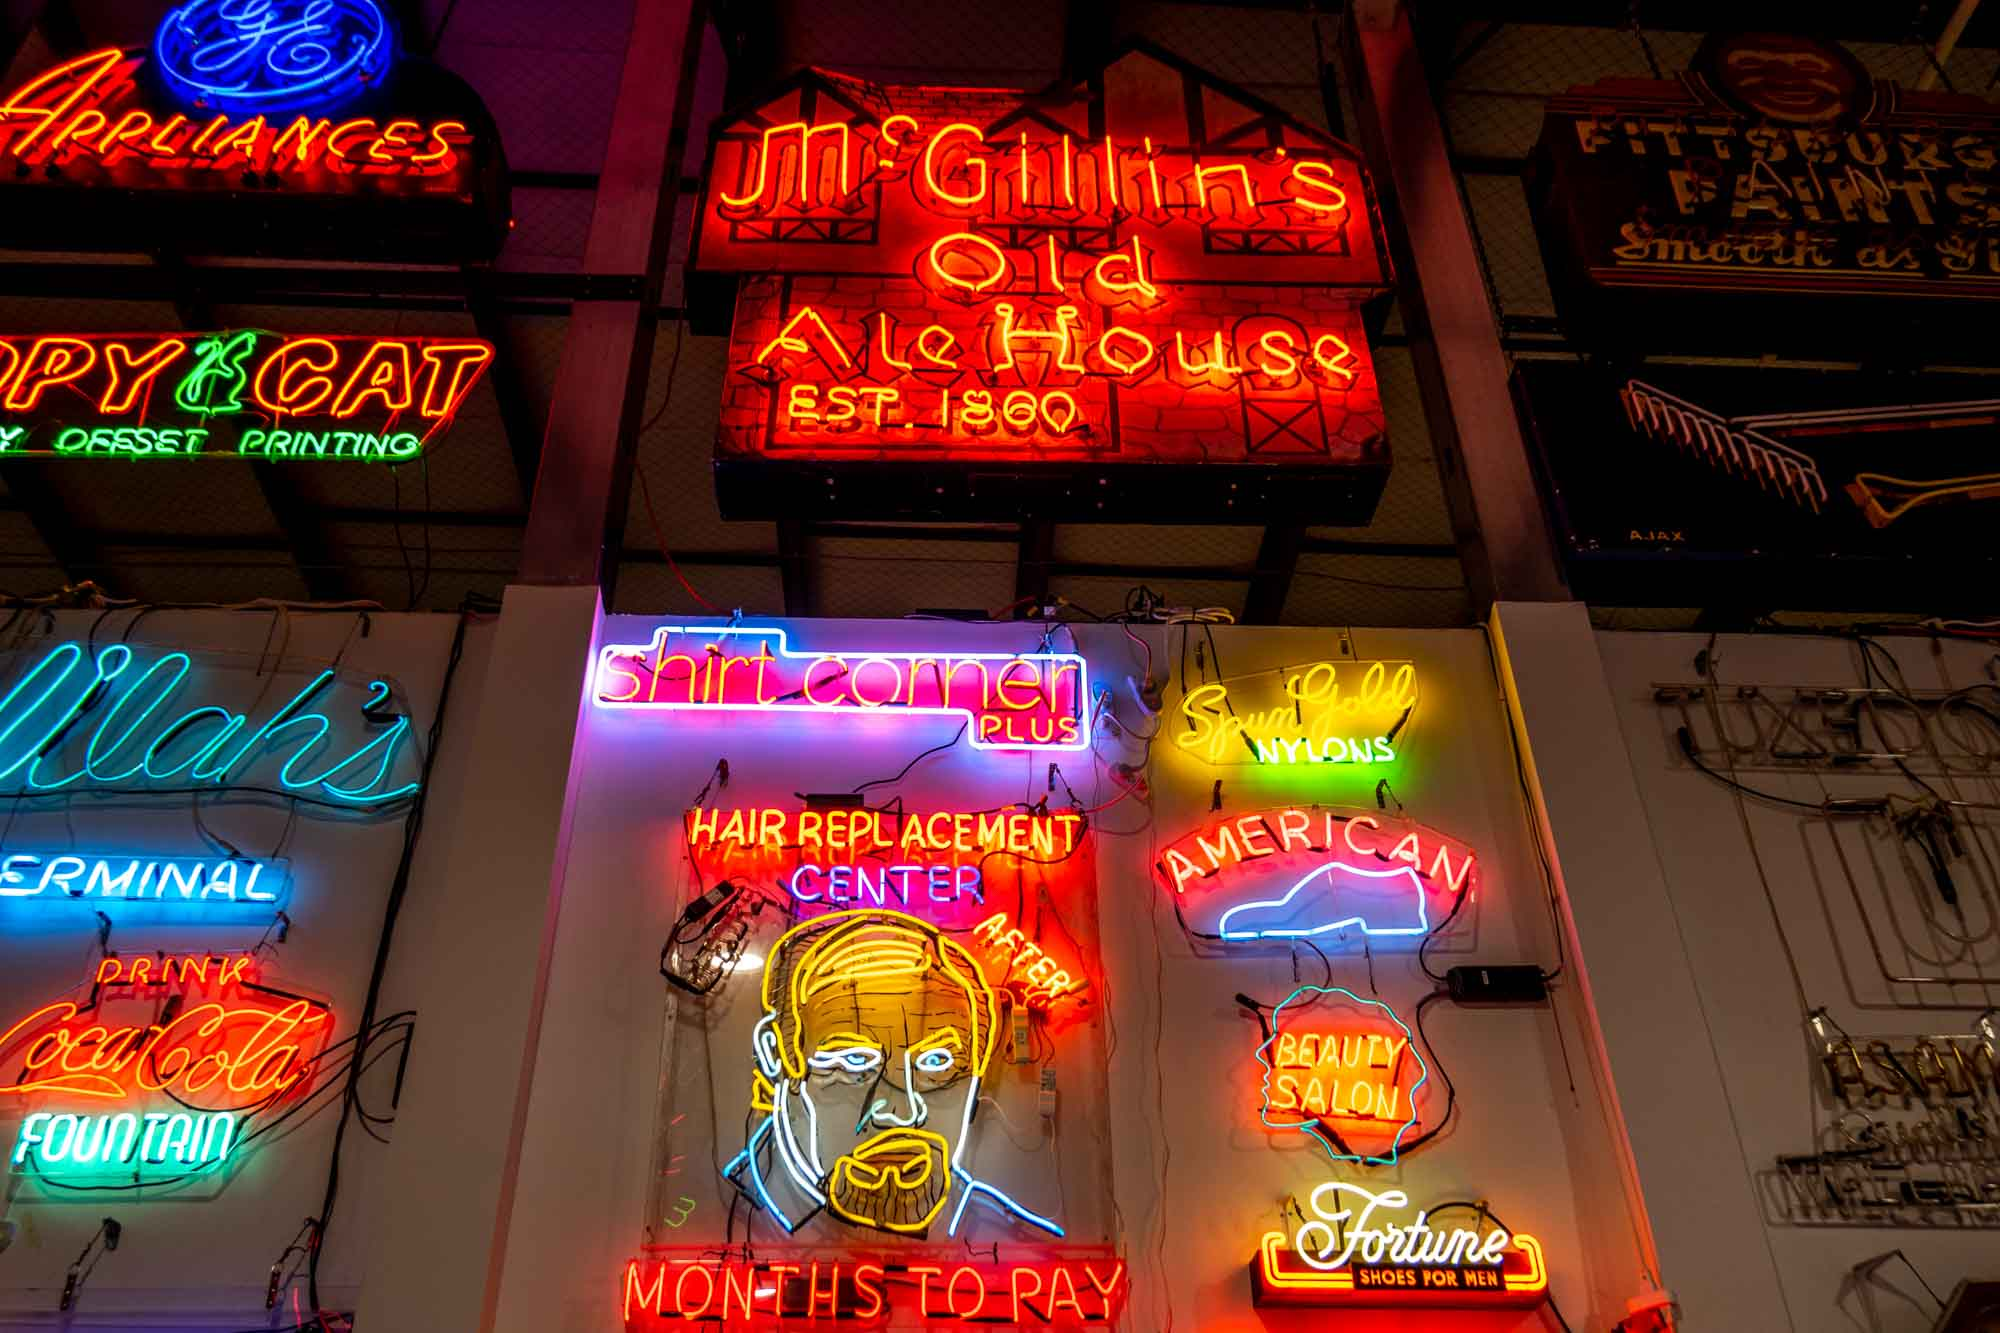 """Lit up neon signs on a wall, including """"McGillin's Old Ale House, Est. 1860,"""" the outline of a shoe, and a man's face advertising Hair Replacement Center"""